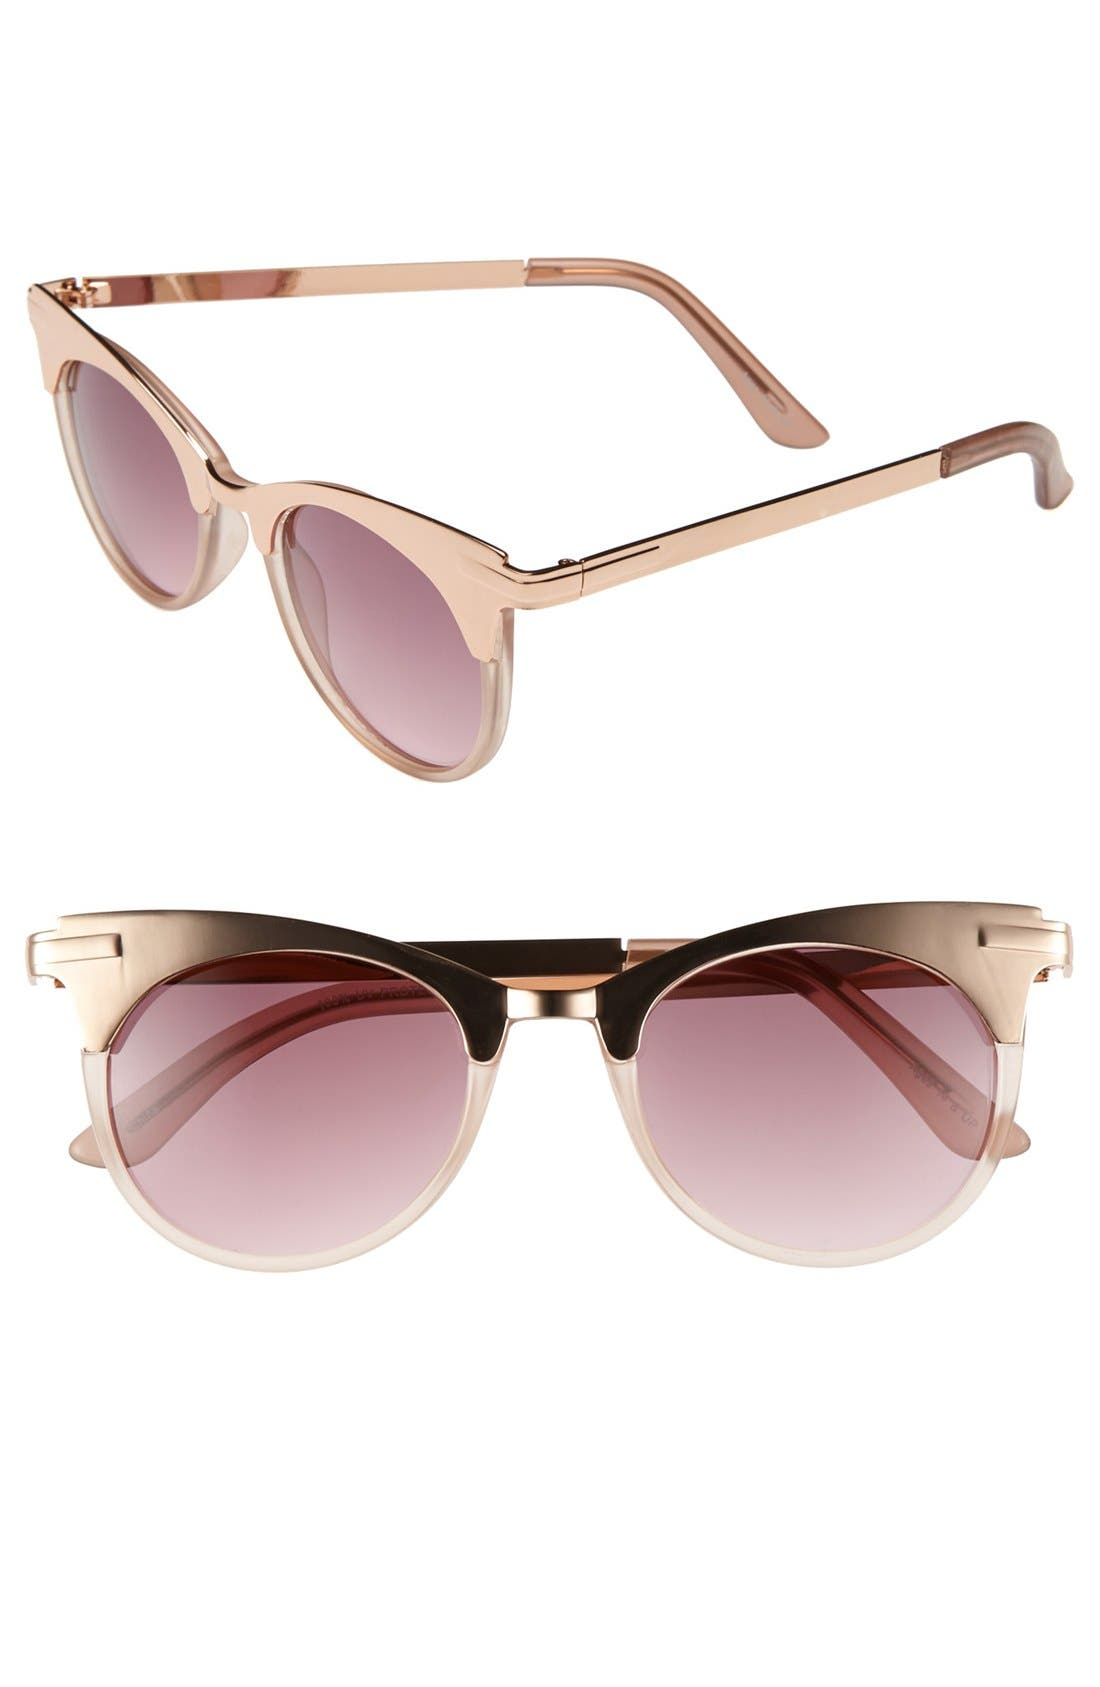 Main Image - FE NY Sunglasses